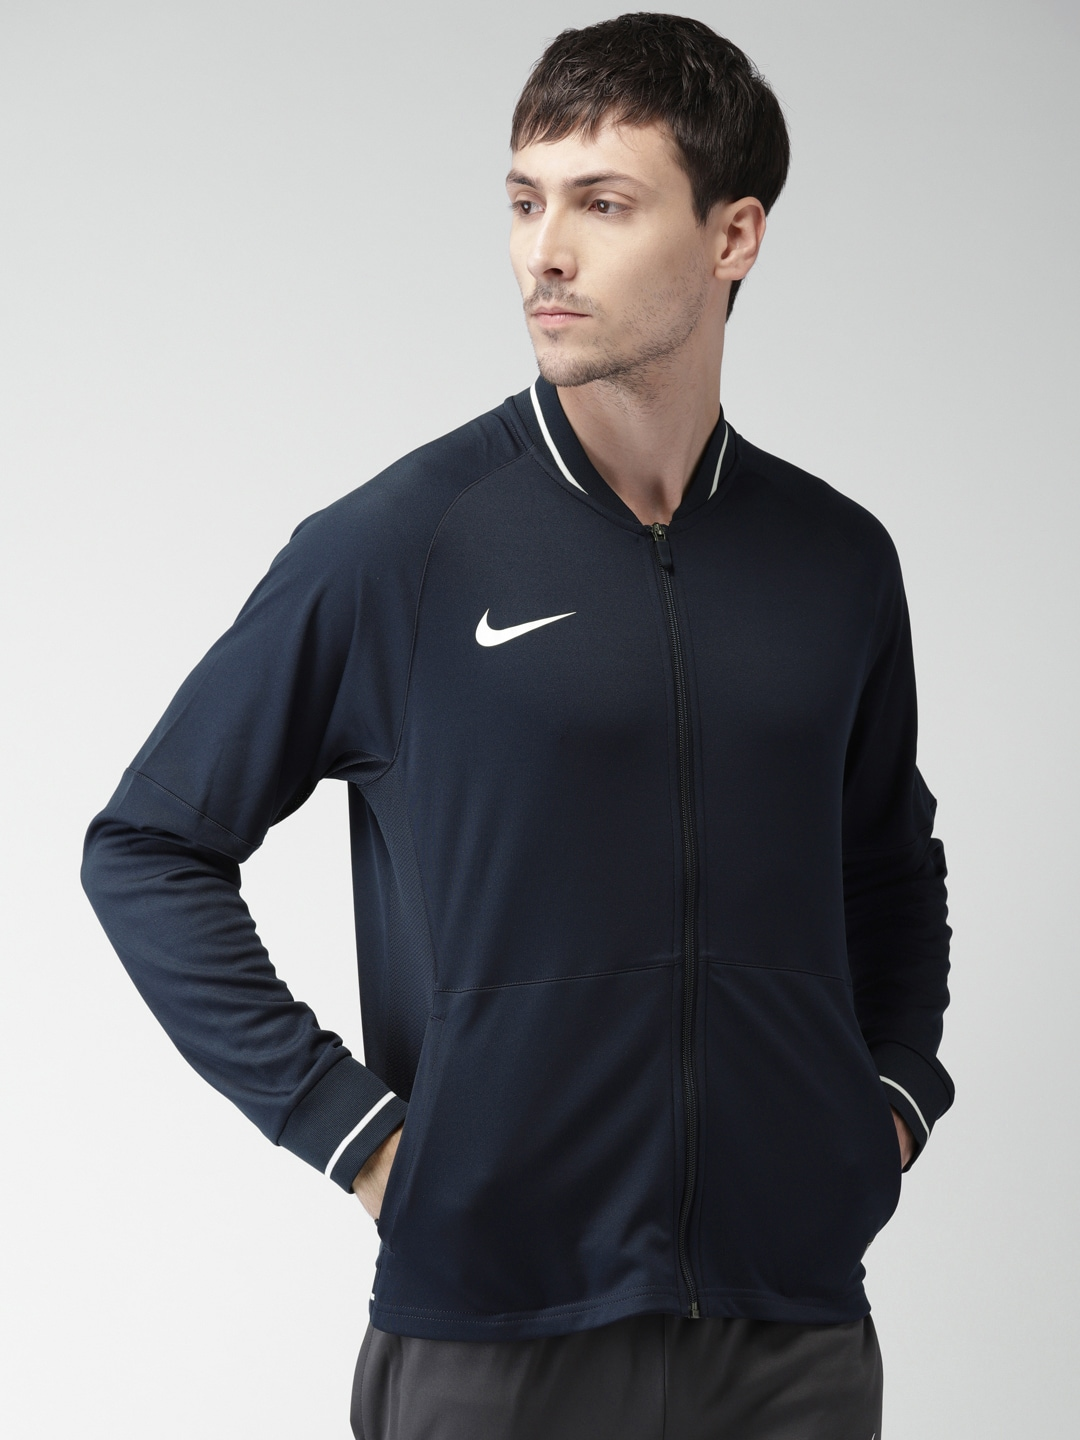 03656d85caa7 Nike Polyester Jackets - Buy Nike Polyester Jackets online in India